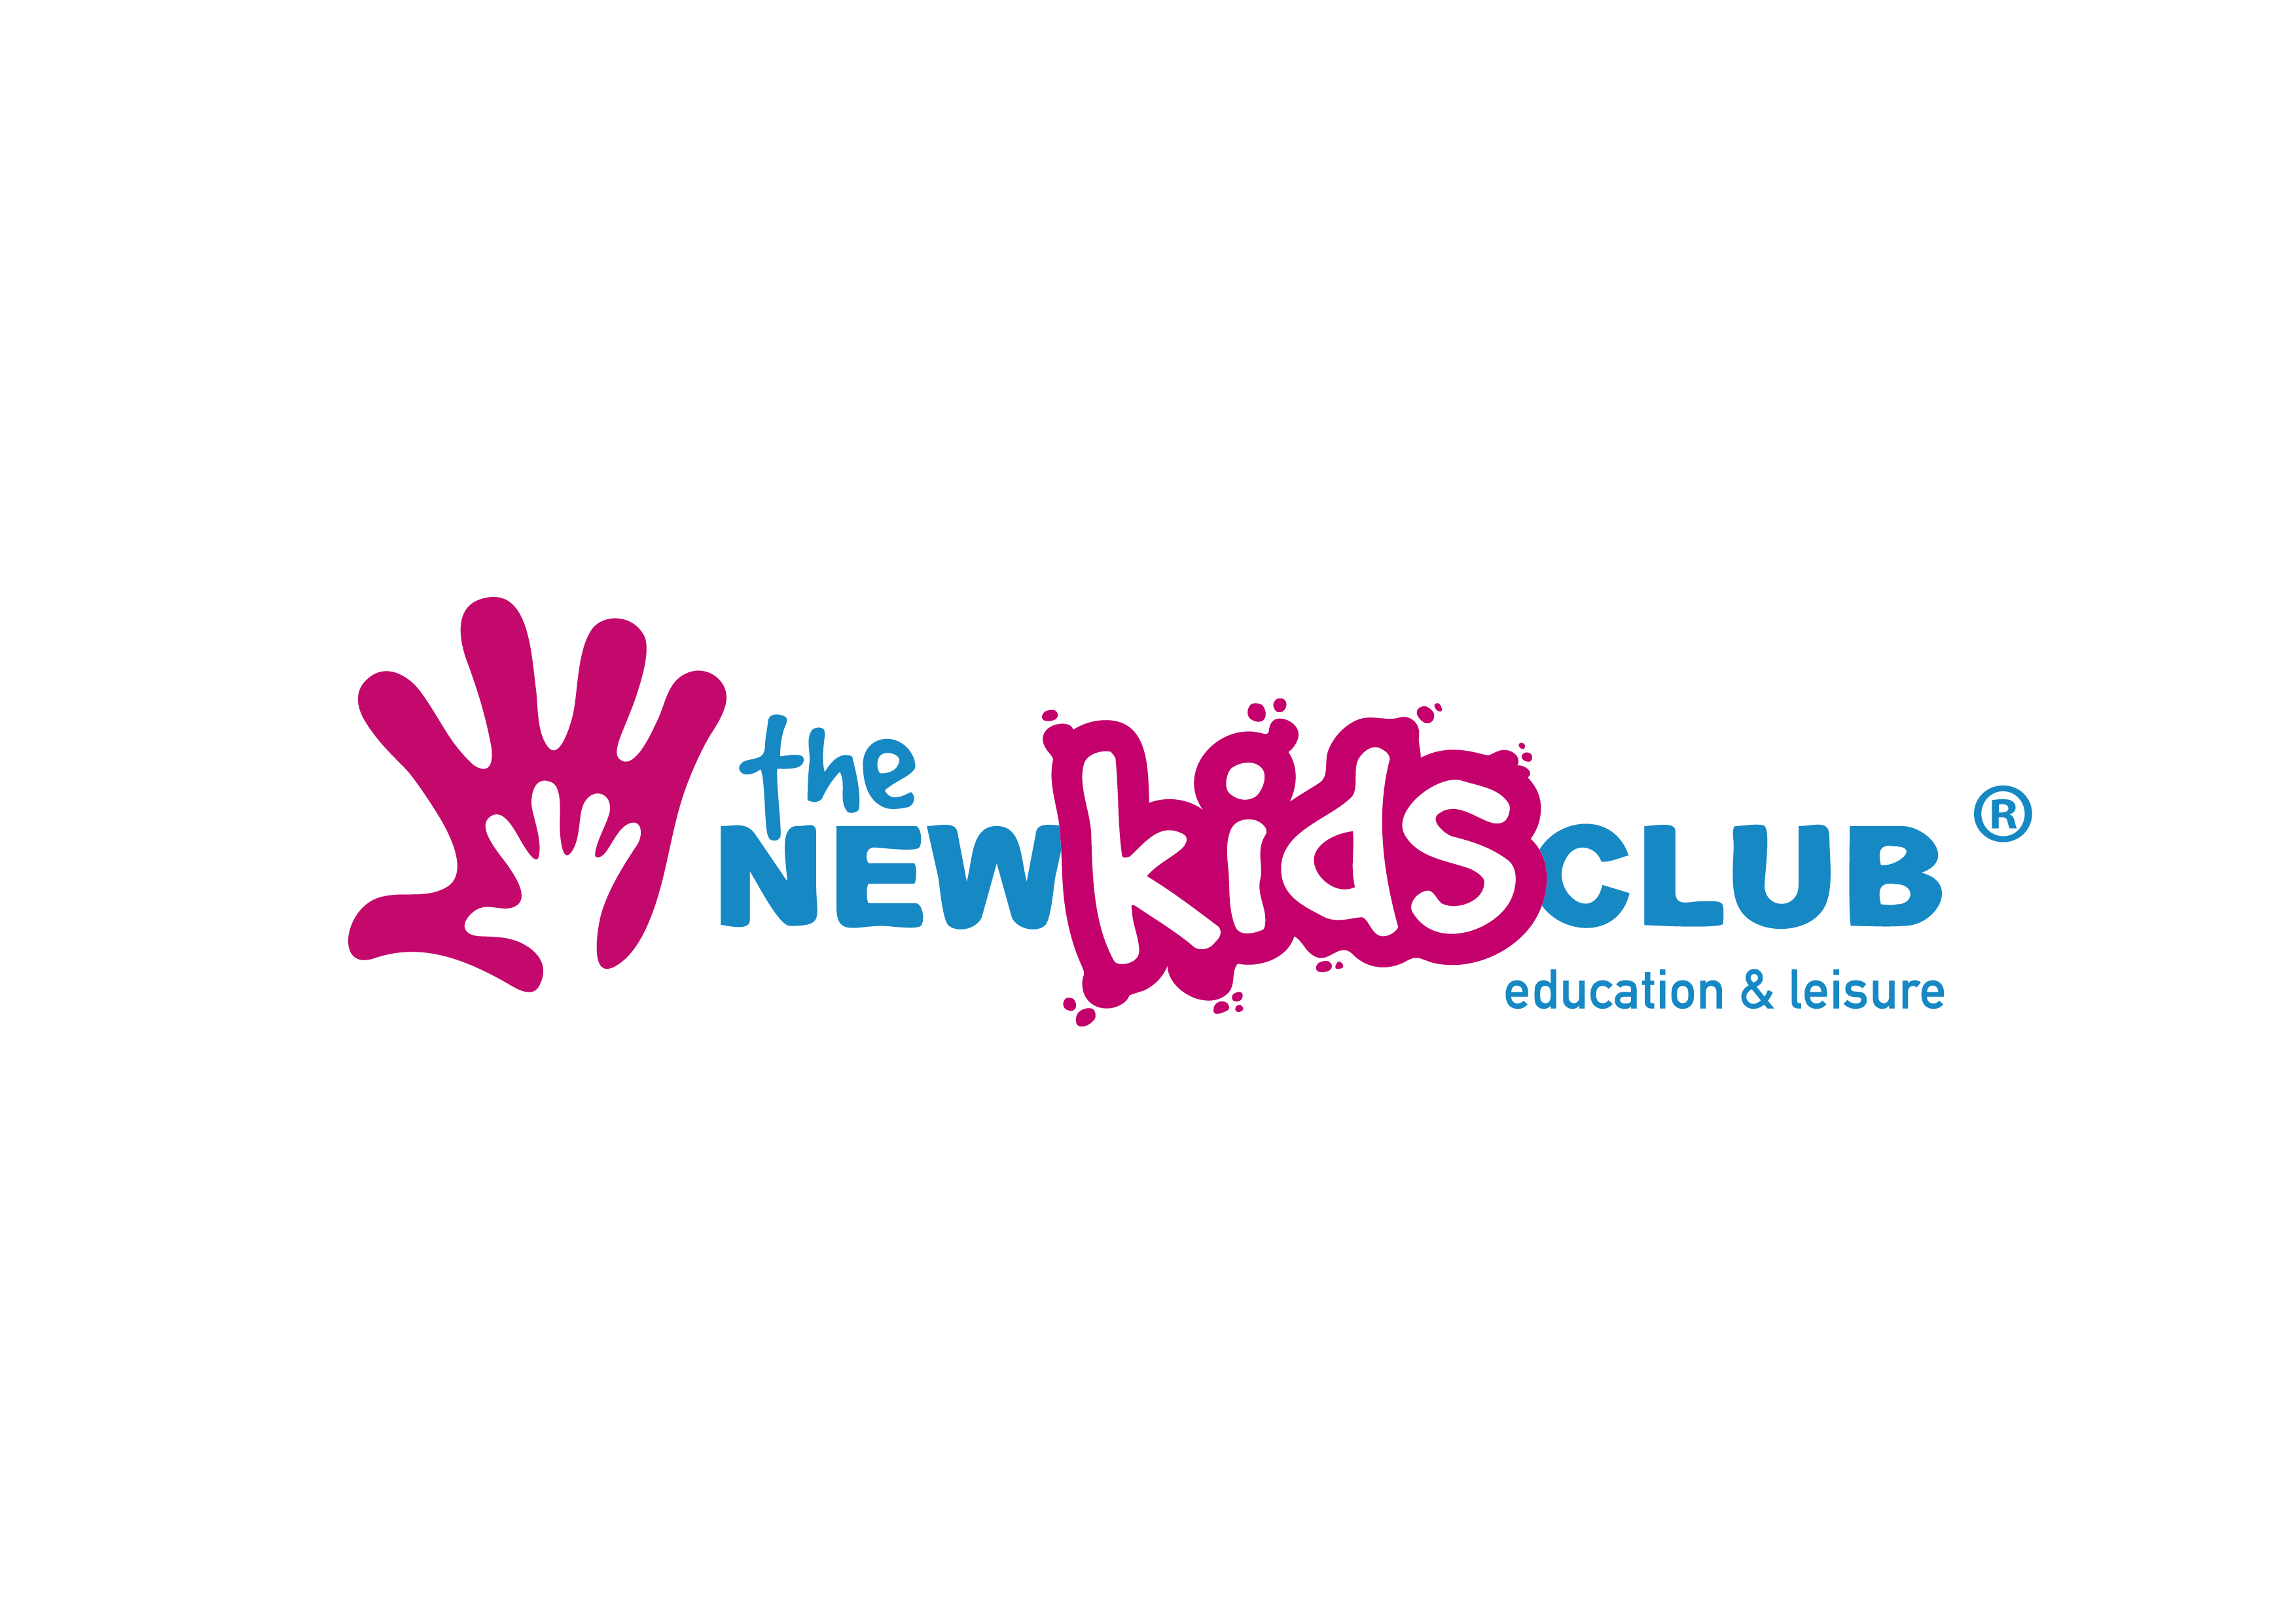 logo-the-new-kids-club